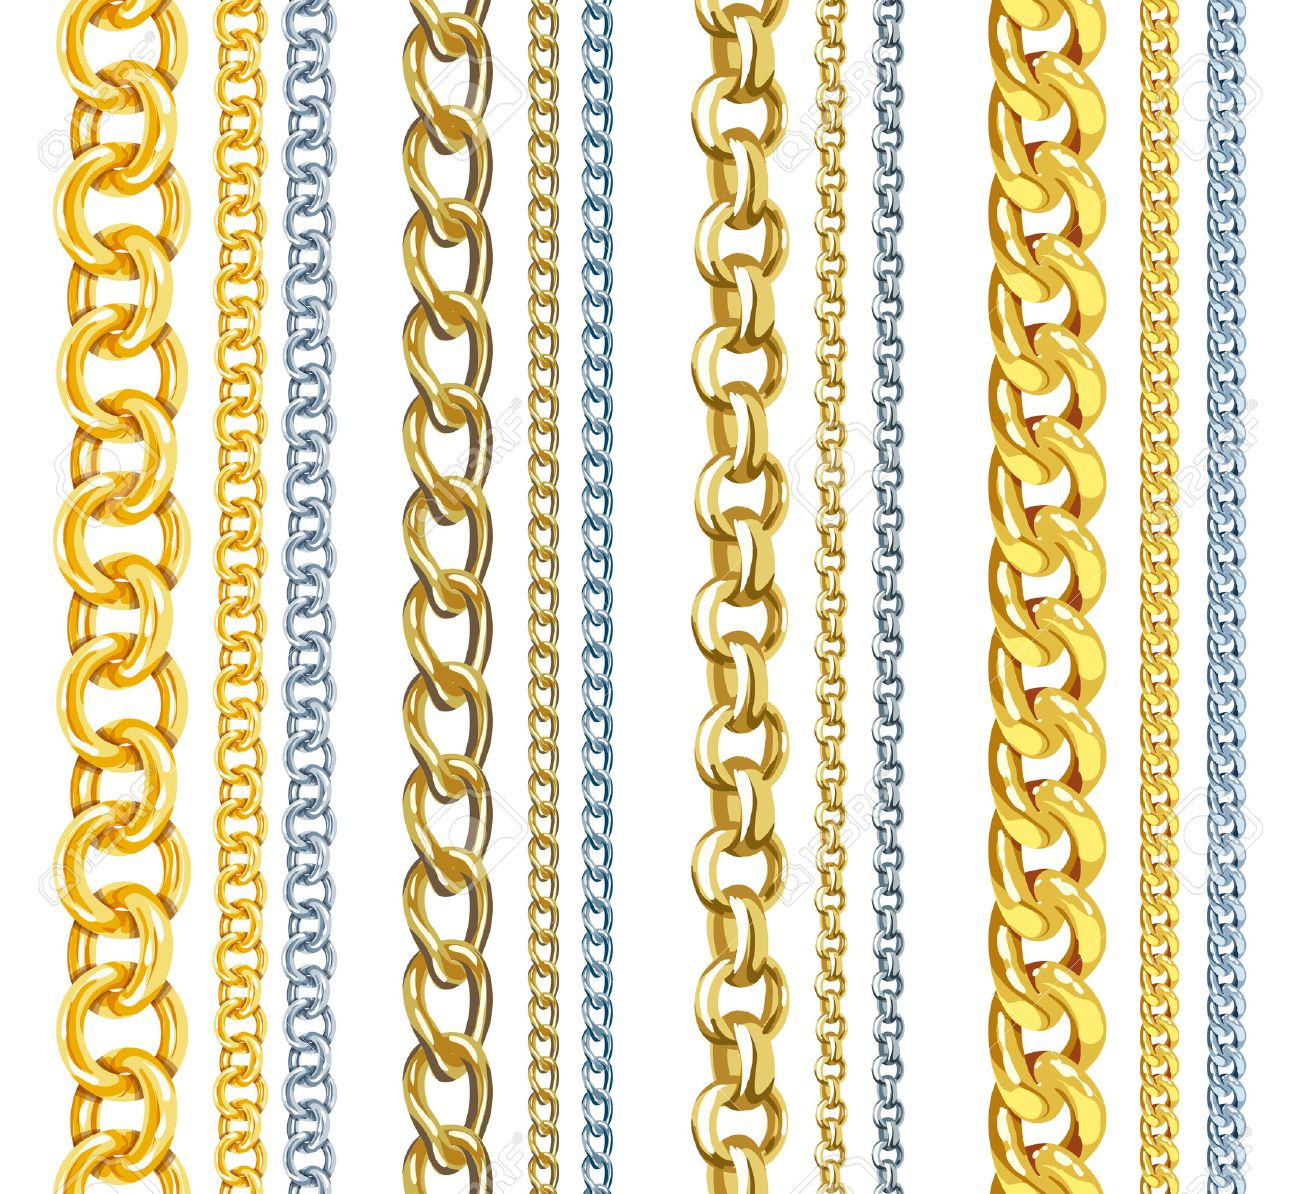 chain cuban stainless steel ugleam chains ip necklace products gold